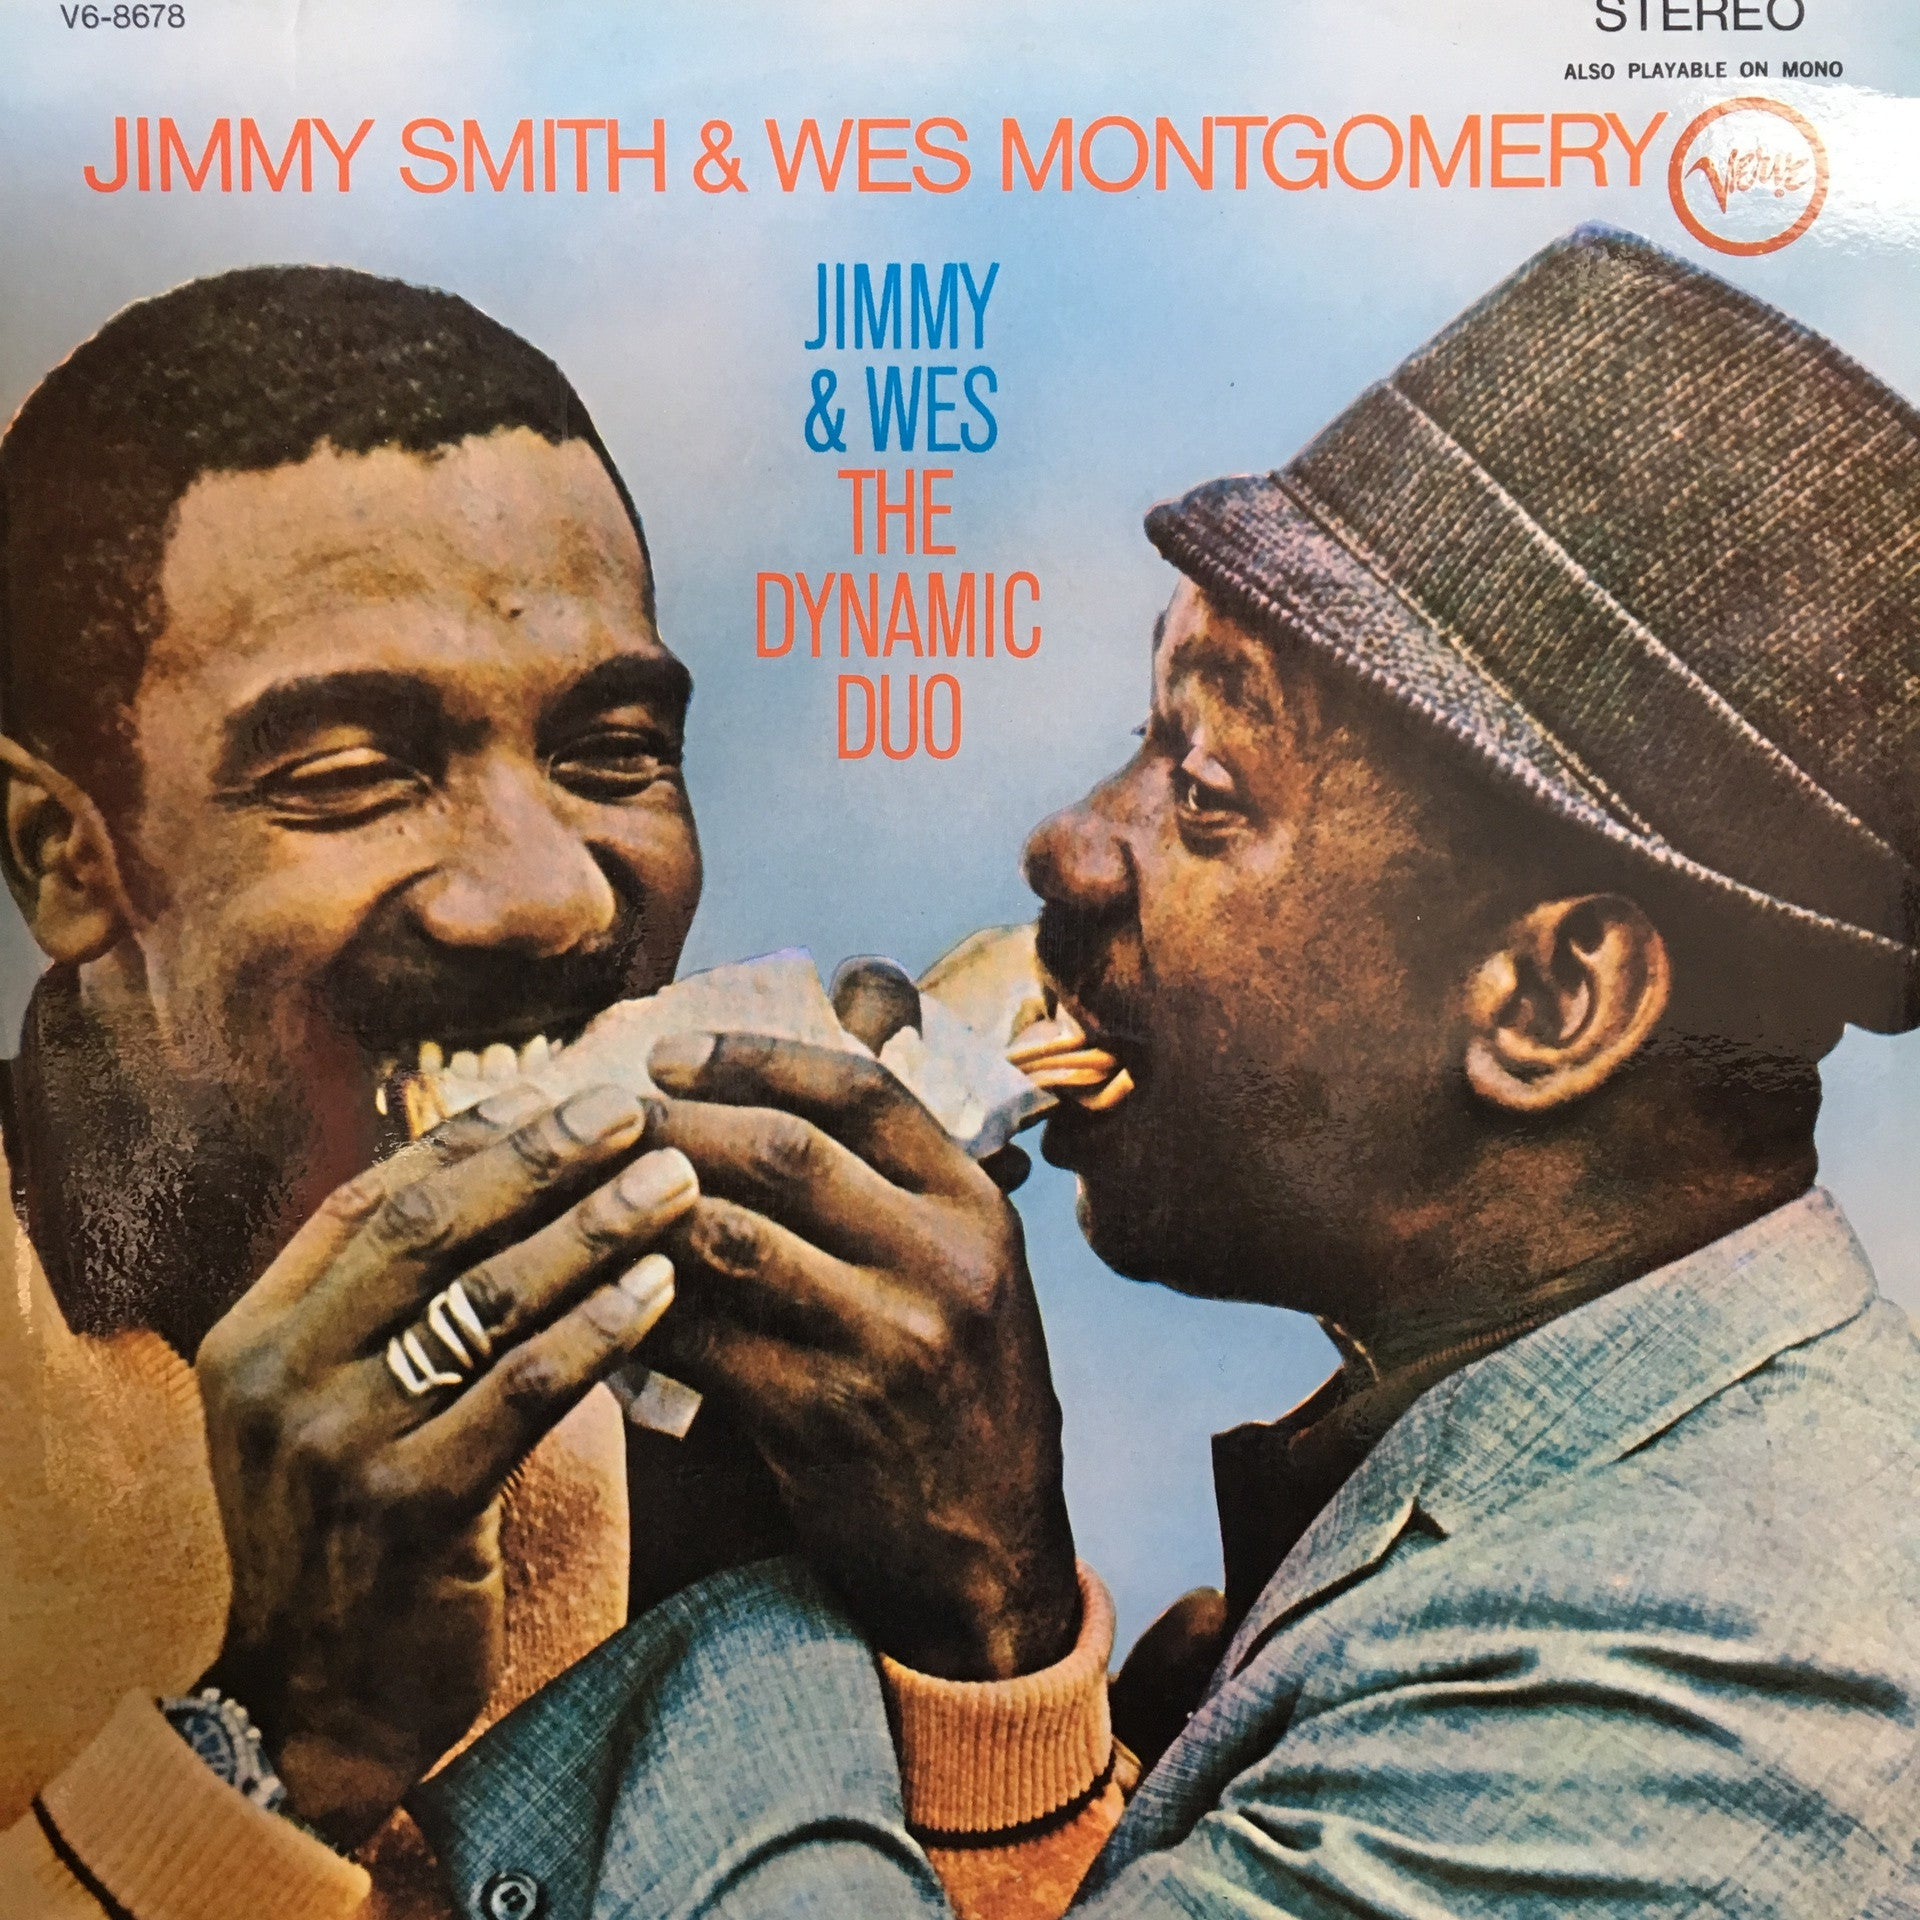 SMITH JIMMY & WES MONTGOMERY-DYNAMIC DUO LP EX COVER VG+